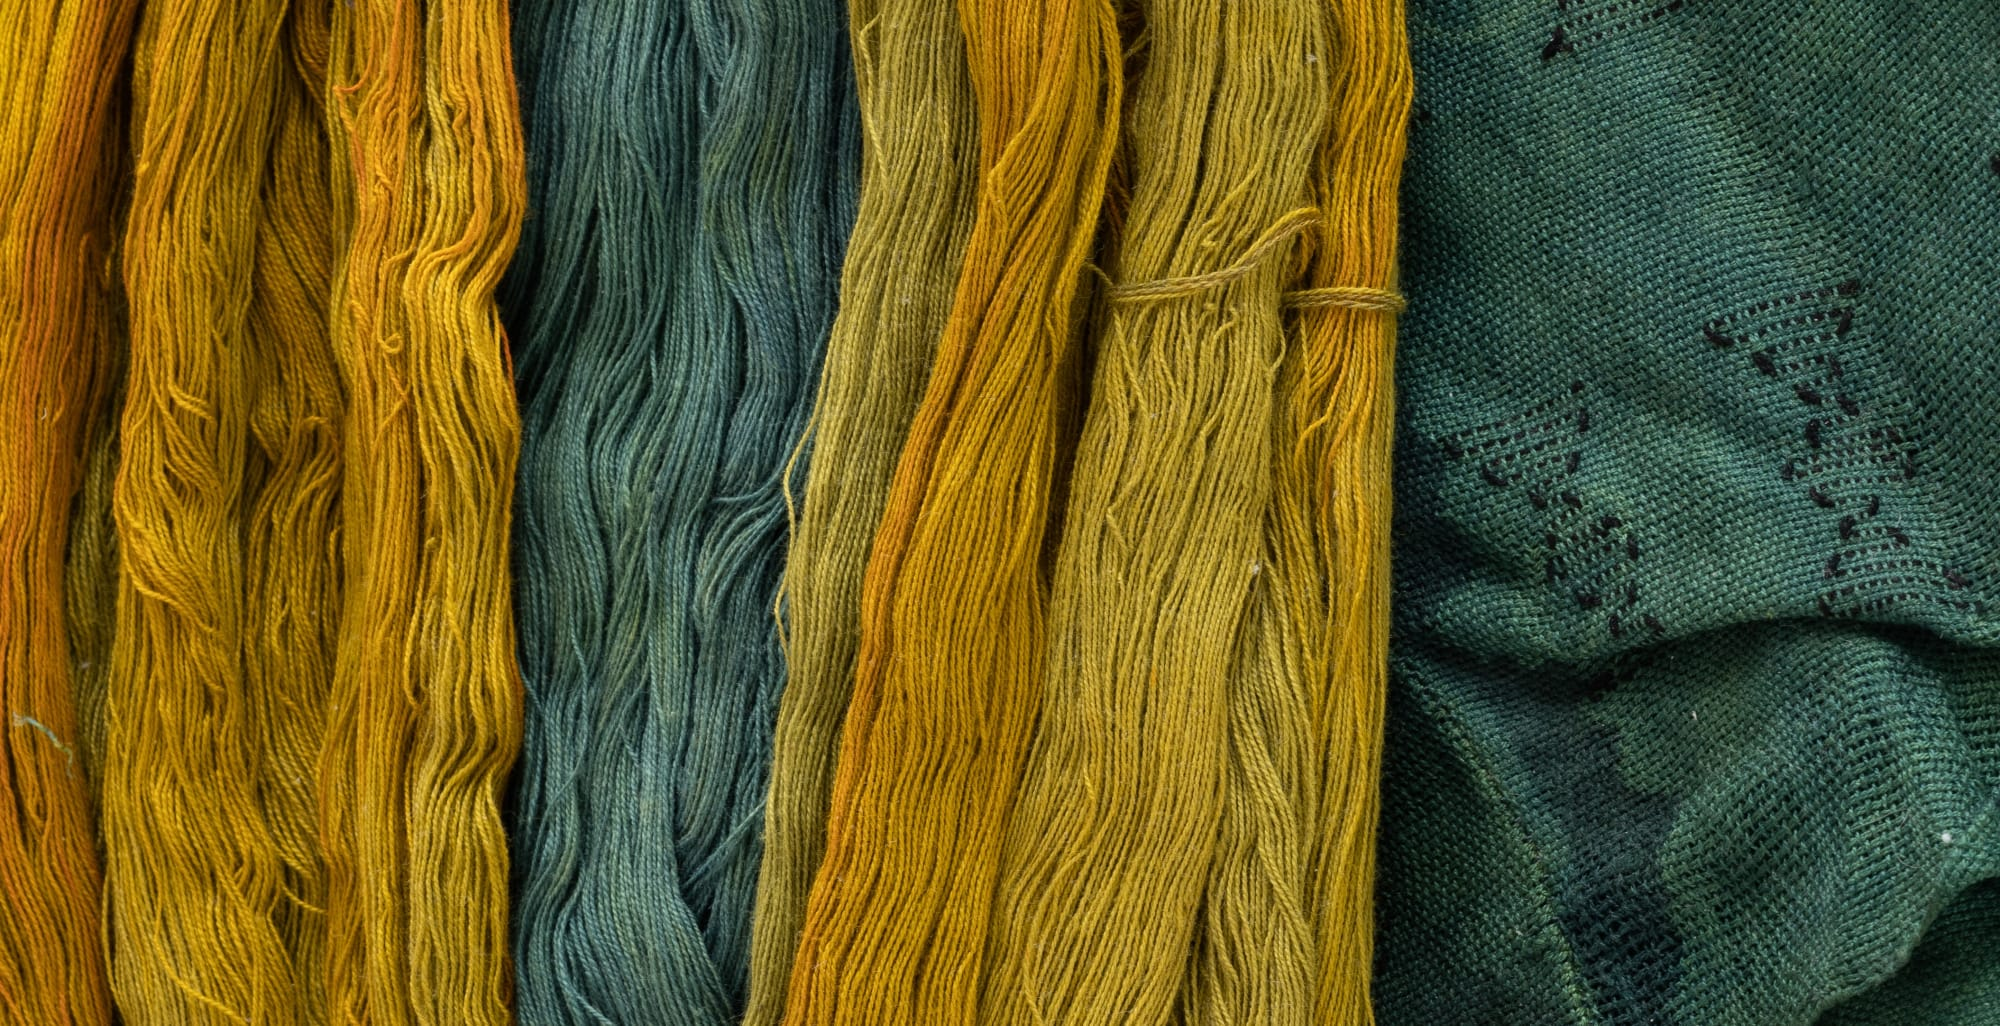 Sandra Monterroso: Dyed in the wool - the committed poetics of nonconformity